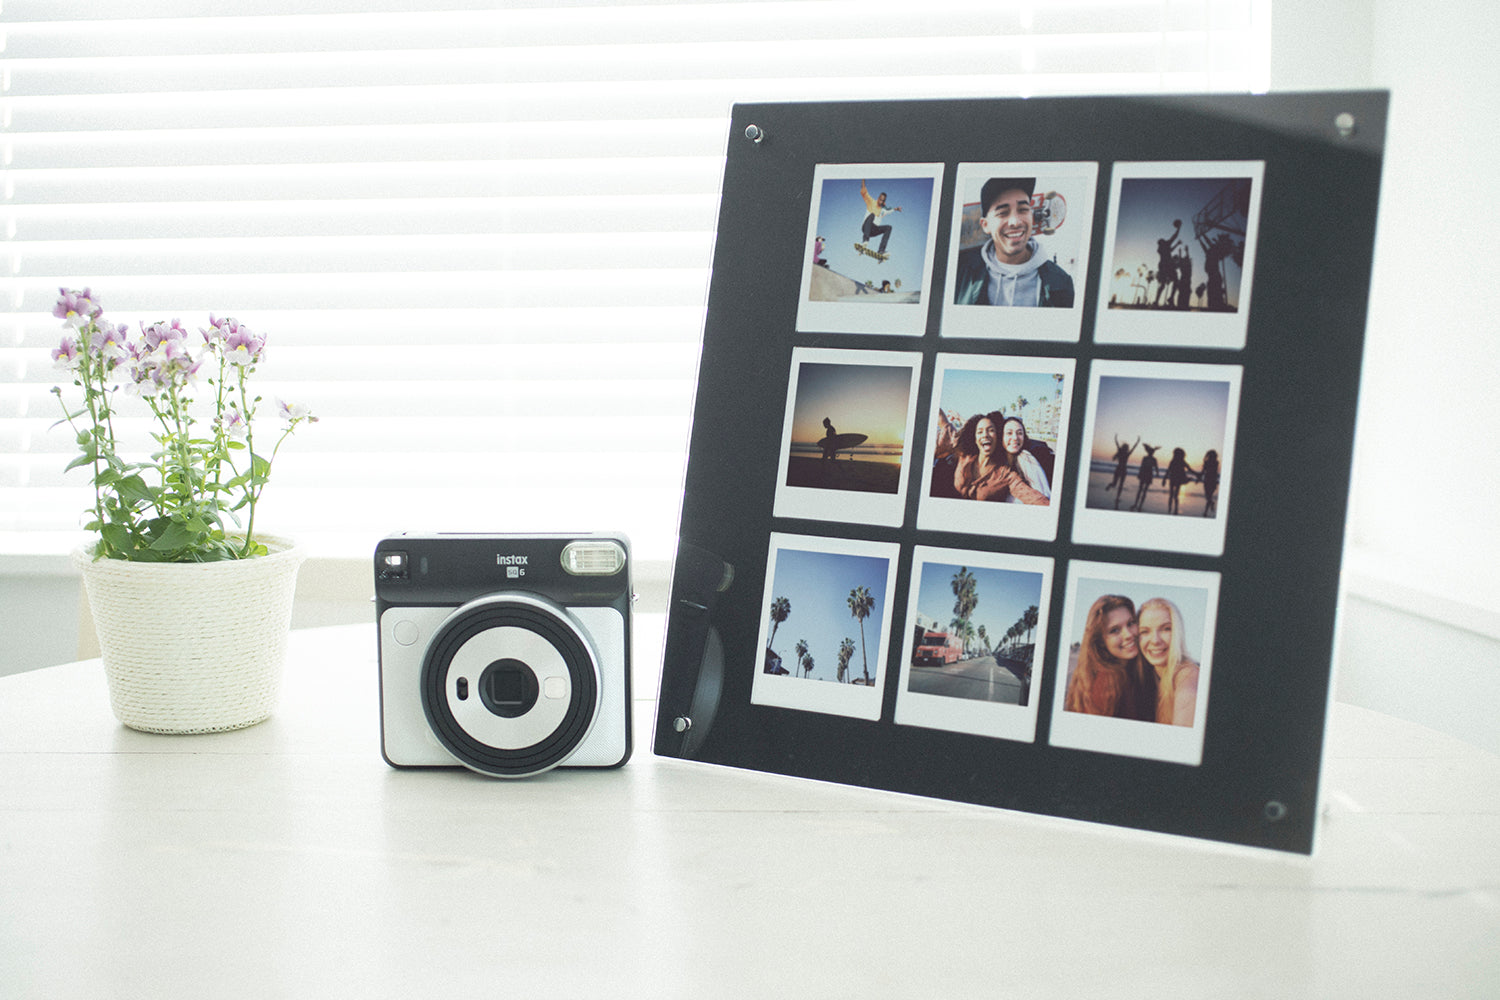 instax SQ6 & prints